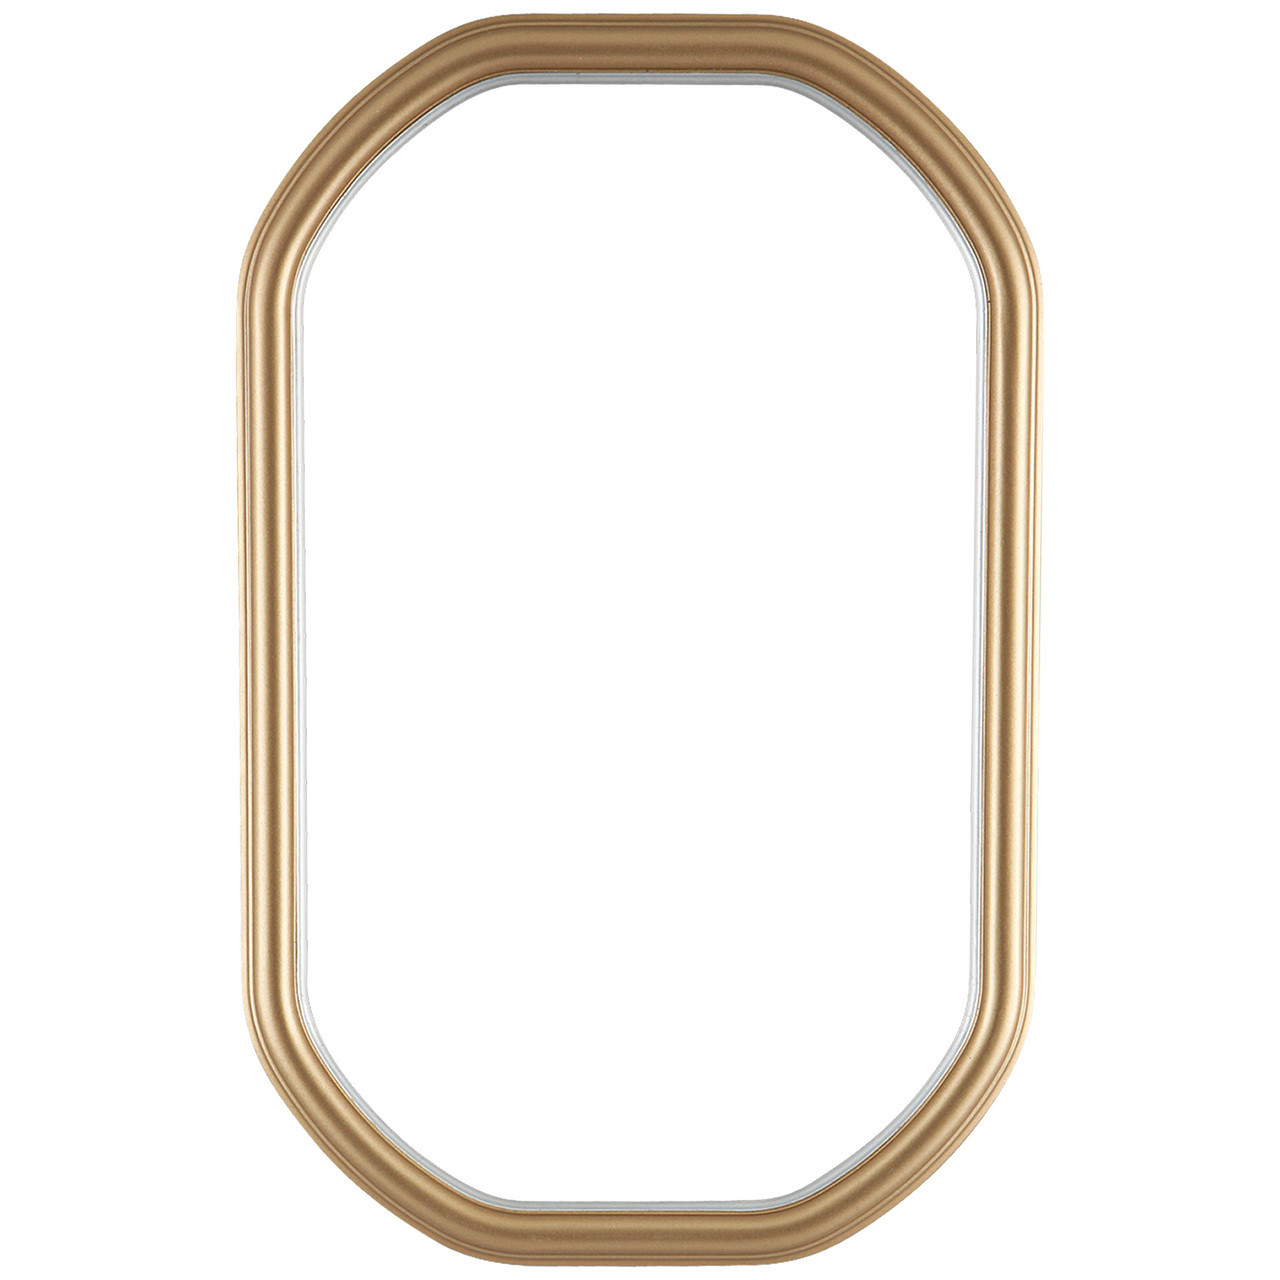 27a2adde9145 Octagon Picture Frames with Gold Leaf on Lips